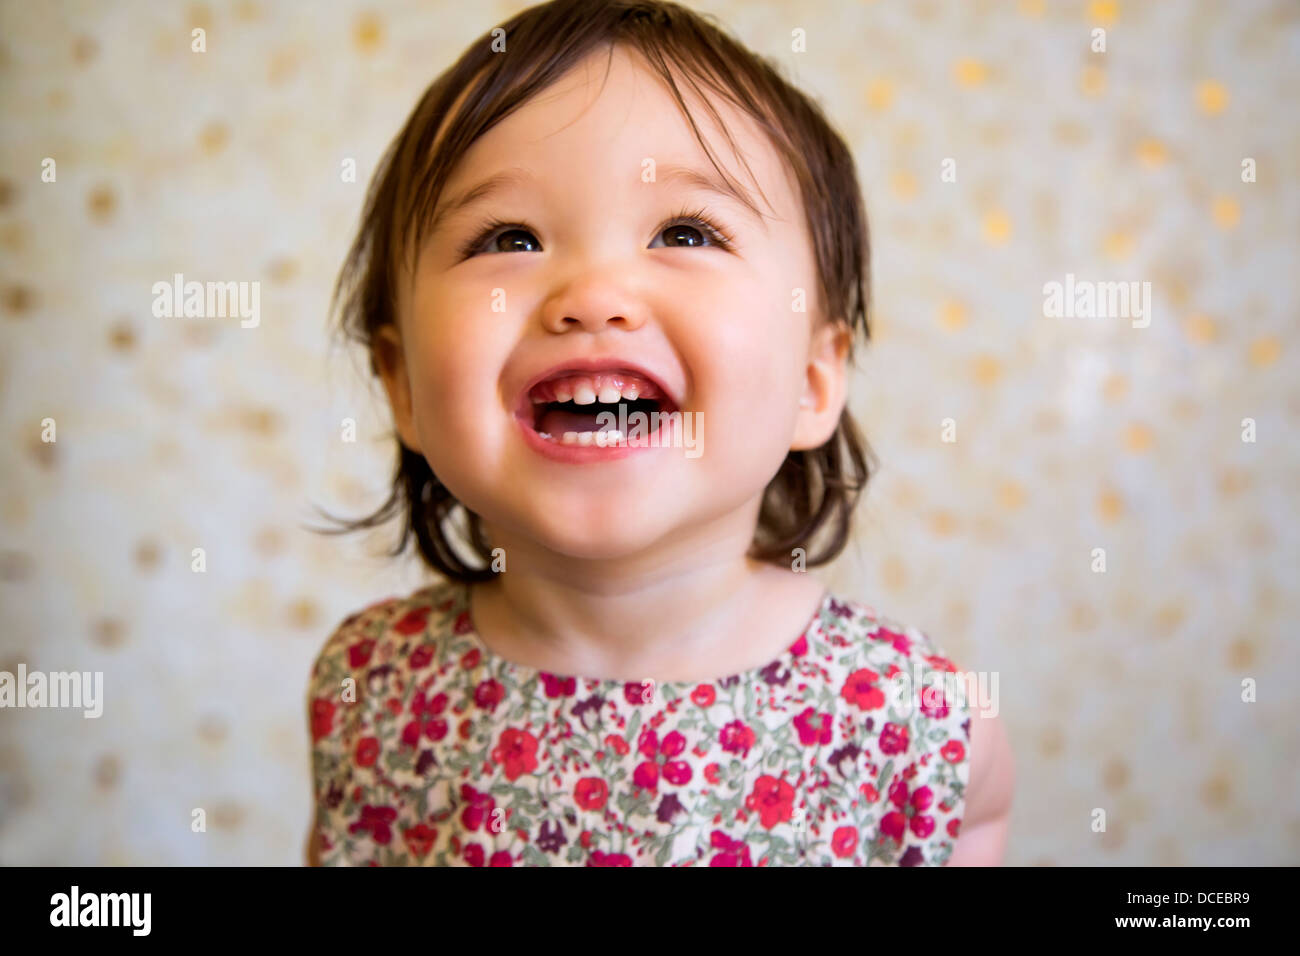 16 mois smiling baby girl Photo Stock